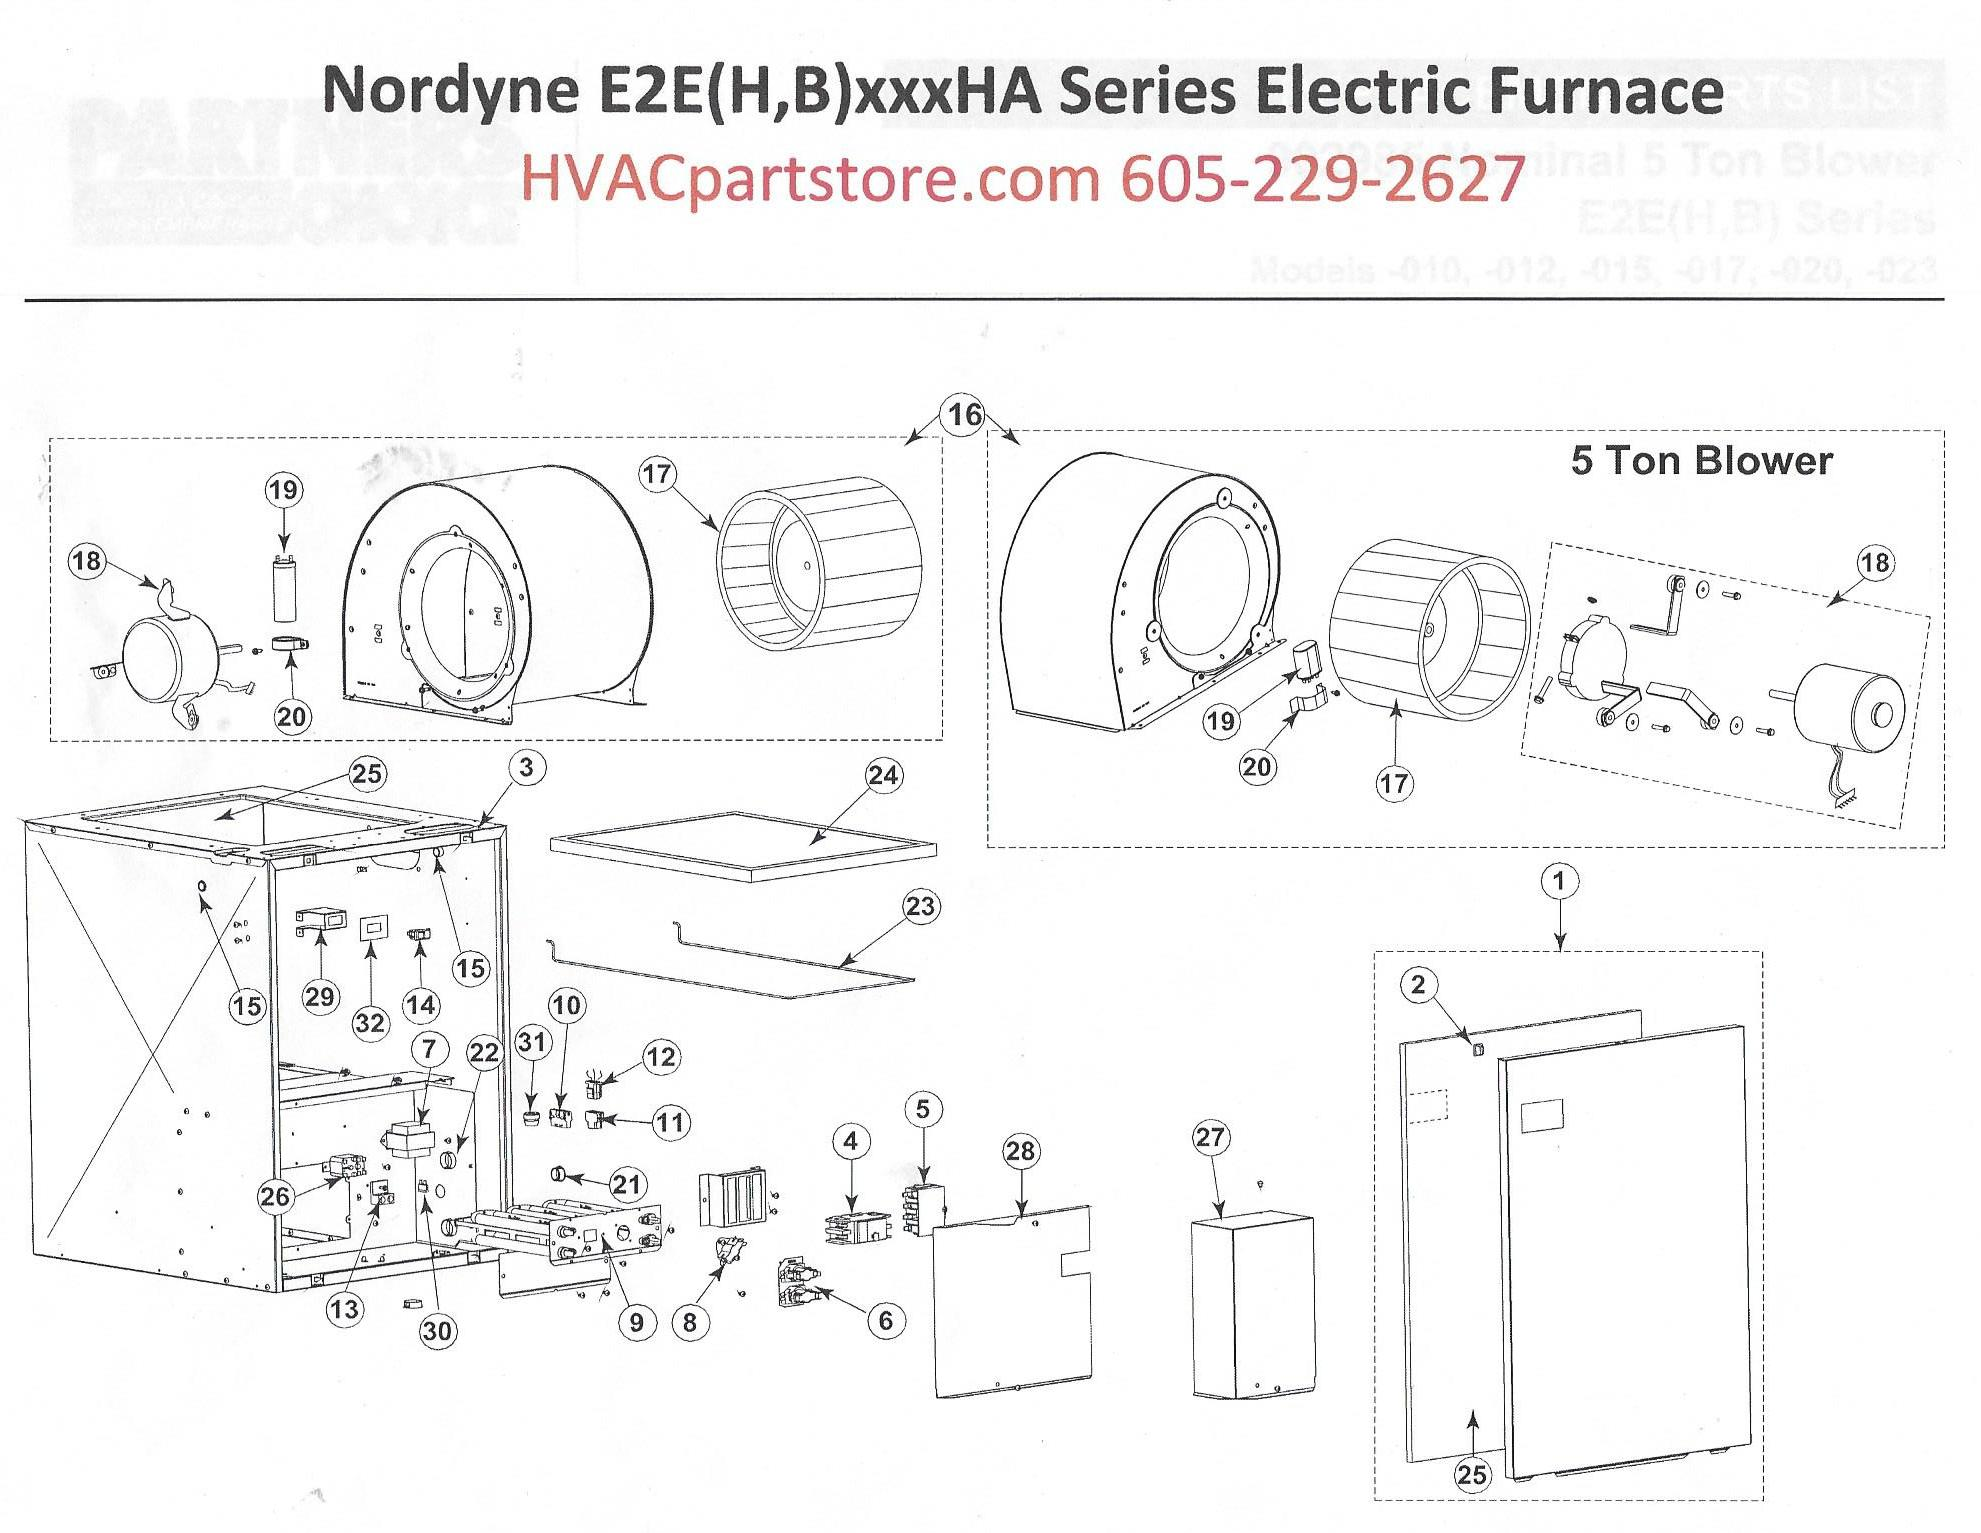 E2HADiagram_2abb159a 7eb1 4d20 871c c9c3b5366288?7399571456907368943 e2eb015hb nordyne electric furnace parts hvacpartstore  at crackthecode.co